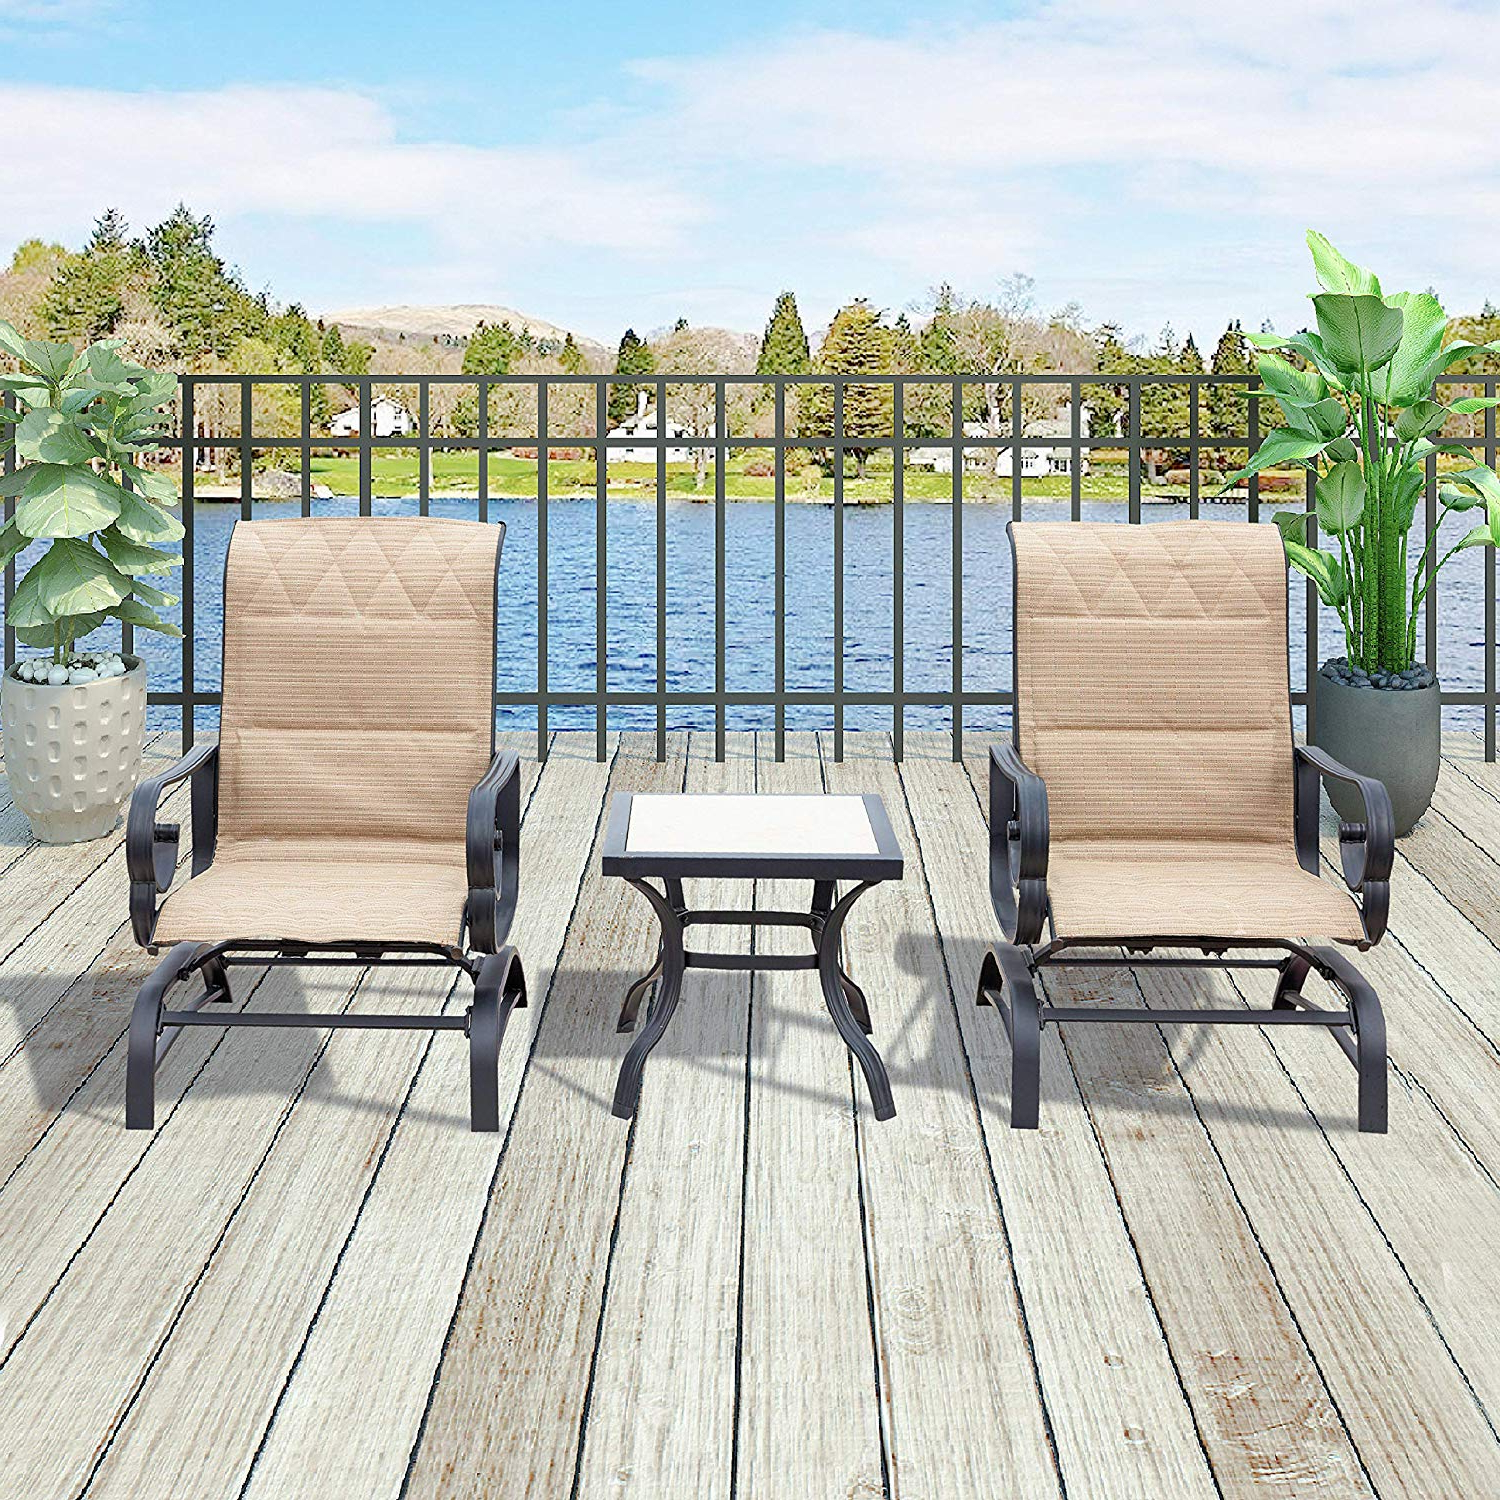 Preferred Outdoor Patio Swing Glider Bench Chair S With Patio Festival ® Outdoor Swing Glider Chair Patio Swing Furniture Sets Seating Rocking Bistro Chairs Set,2 Chairs And 1 Table (3 Pcs, Beige) (View 7 of 30)